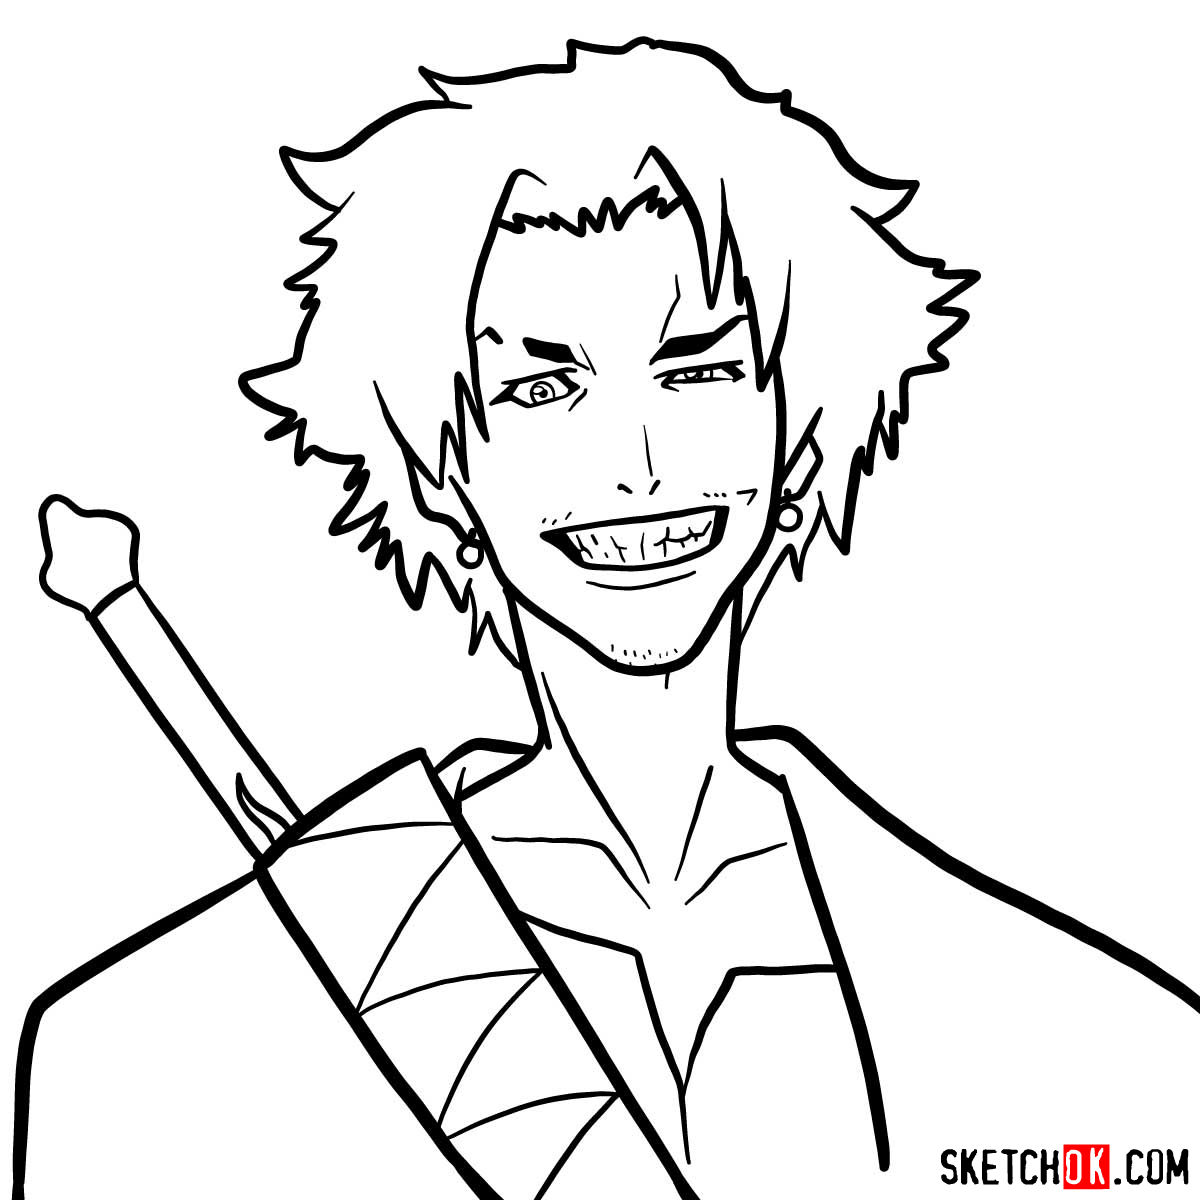 Making the drawing of Mugen's face in 12 steps